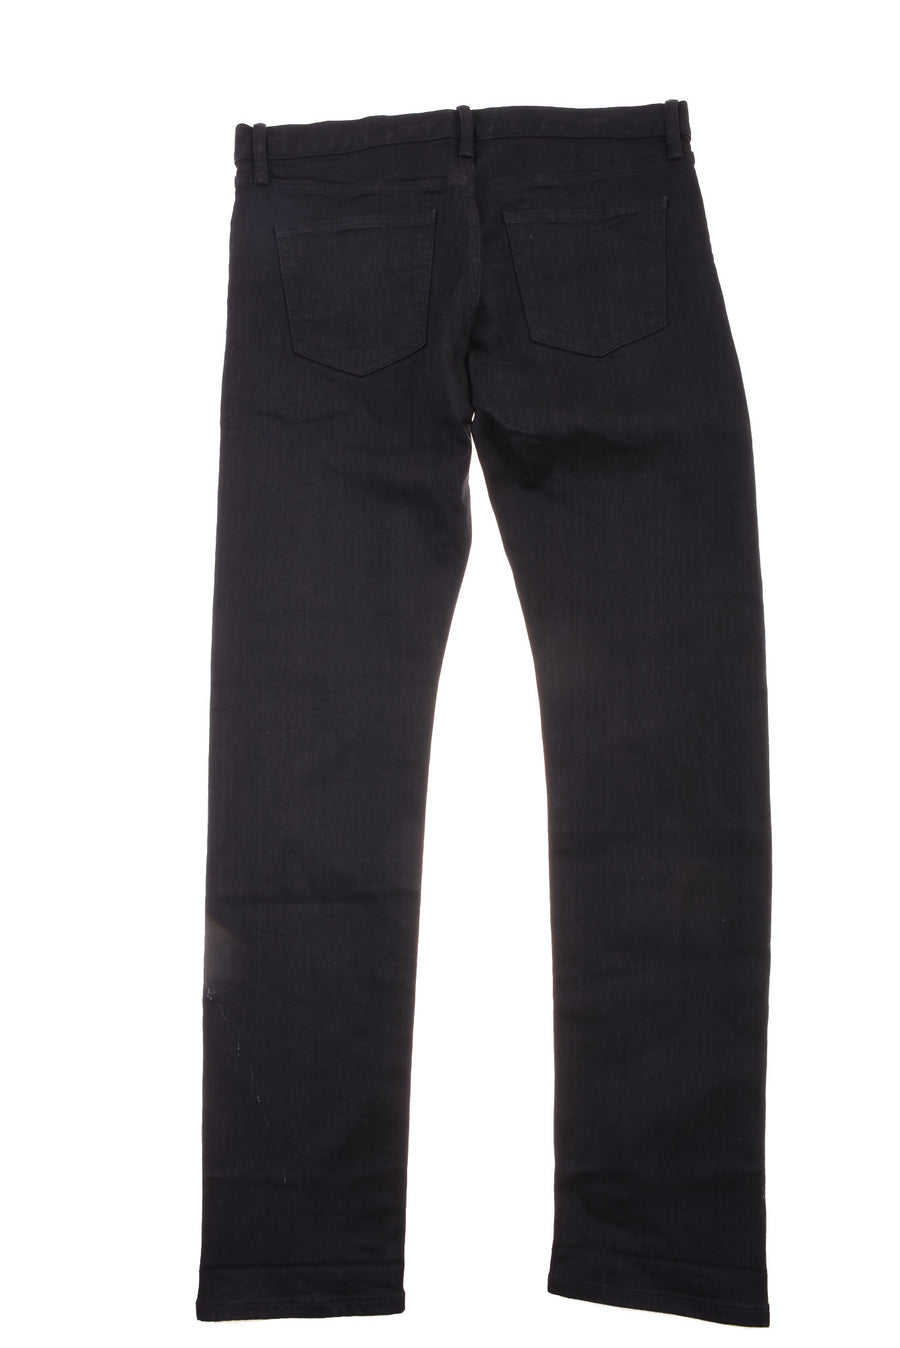 USED Uniqlo Men's Jeans 32x32 Black